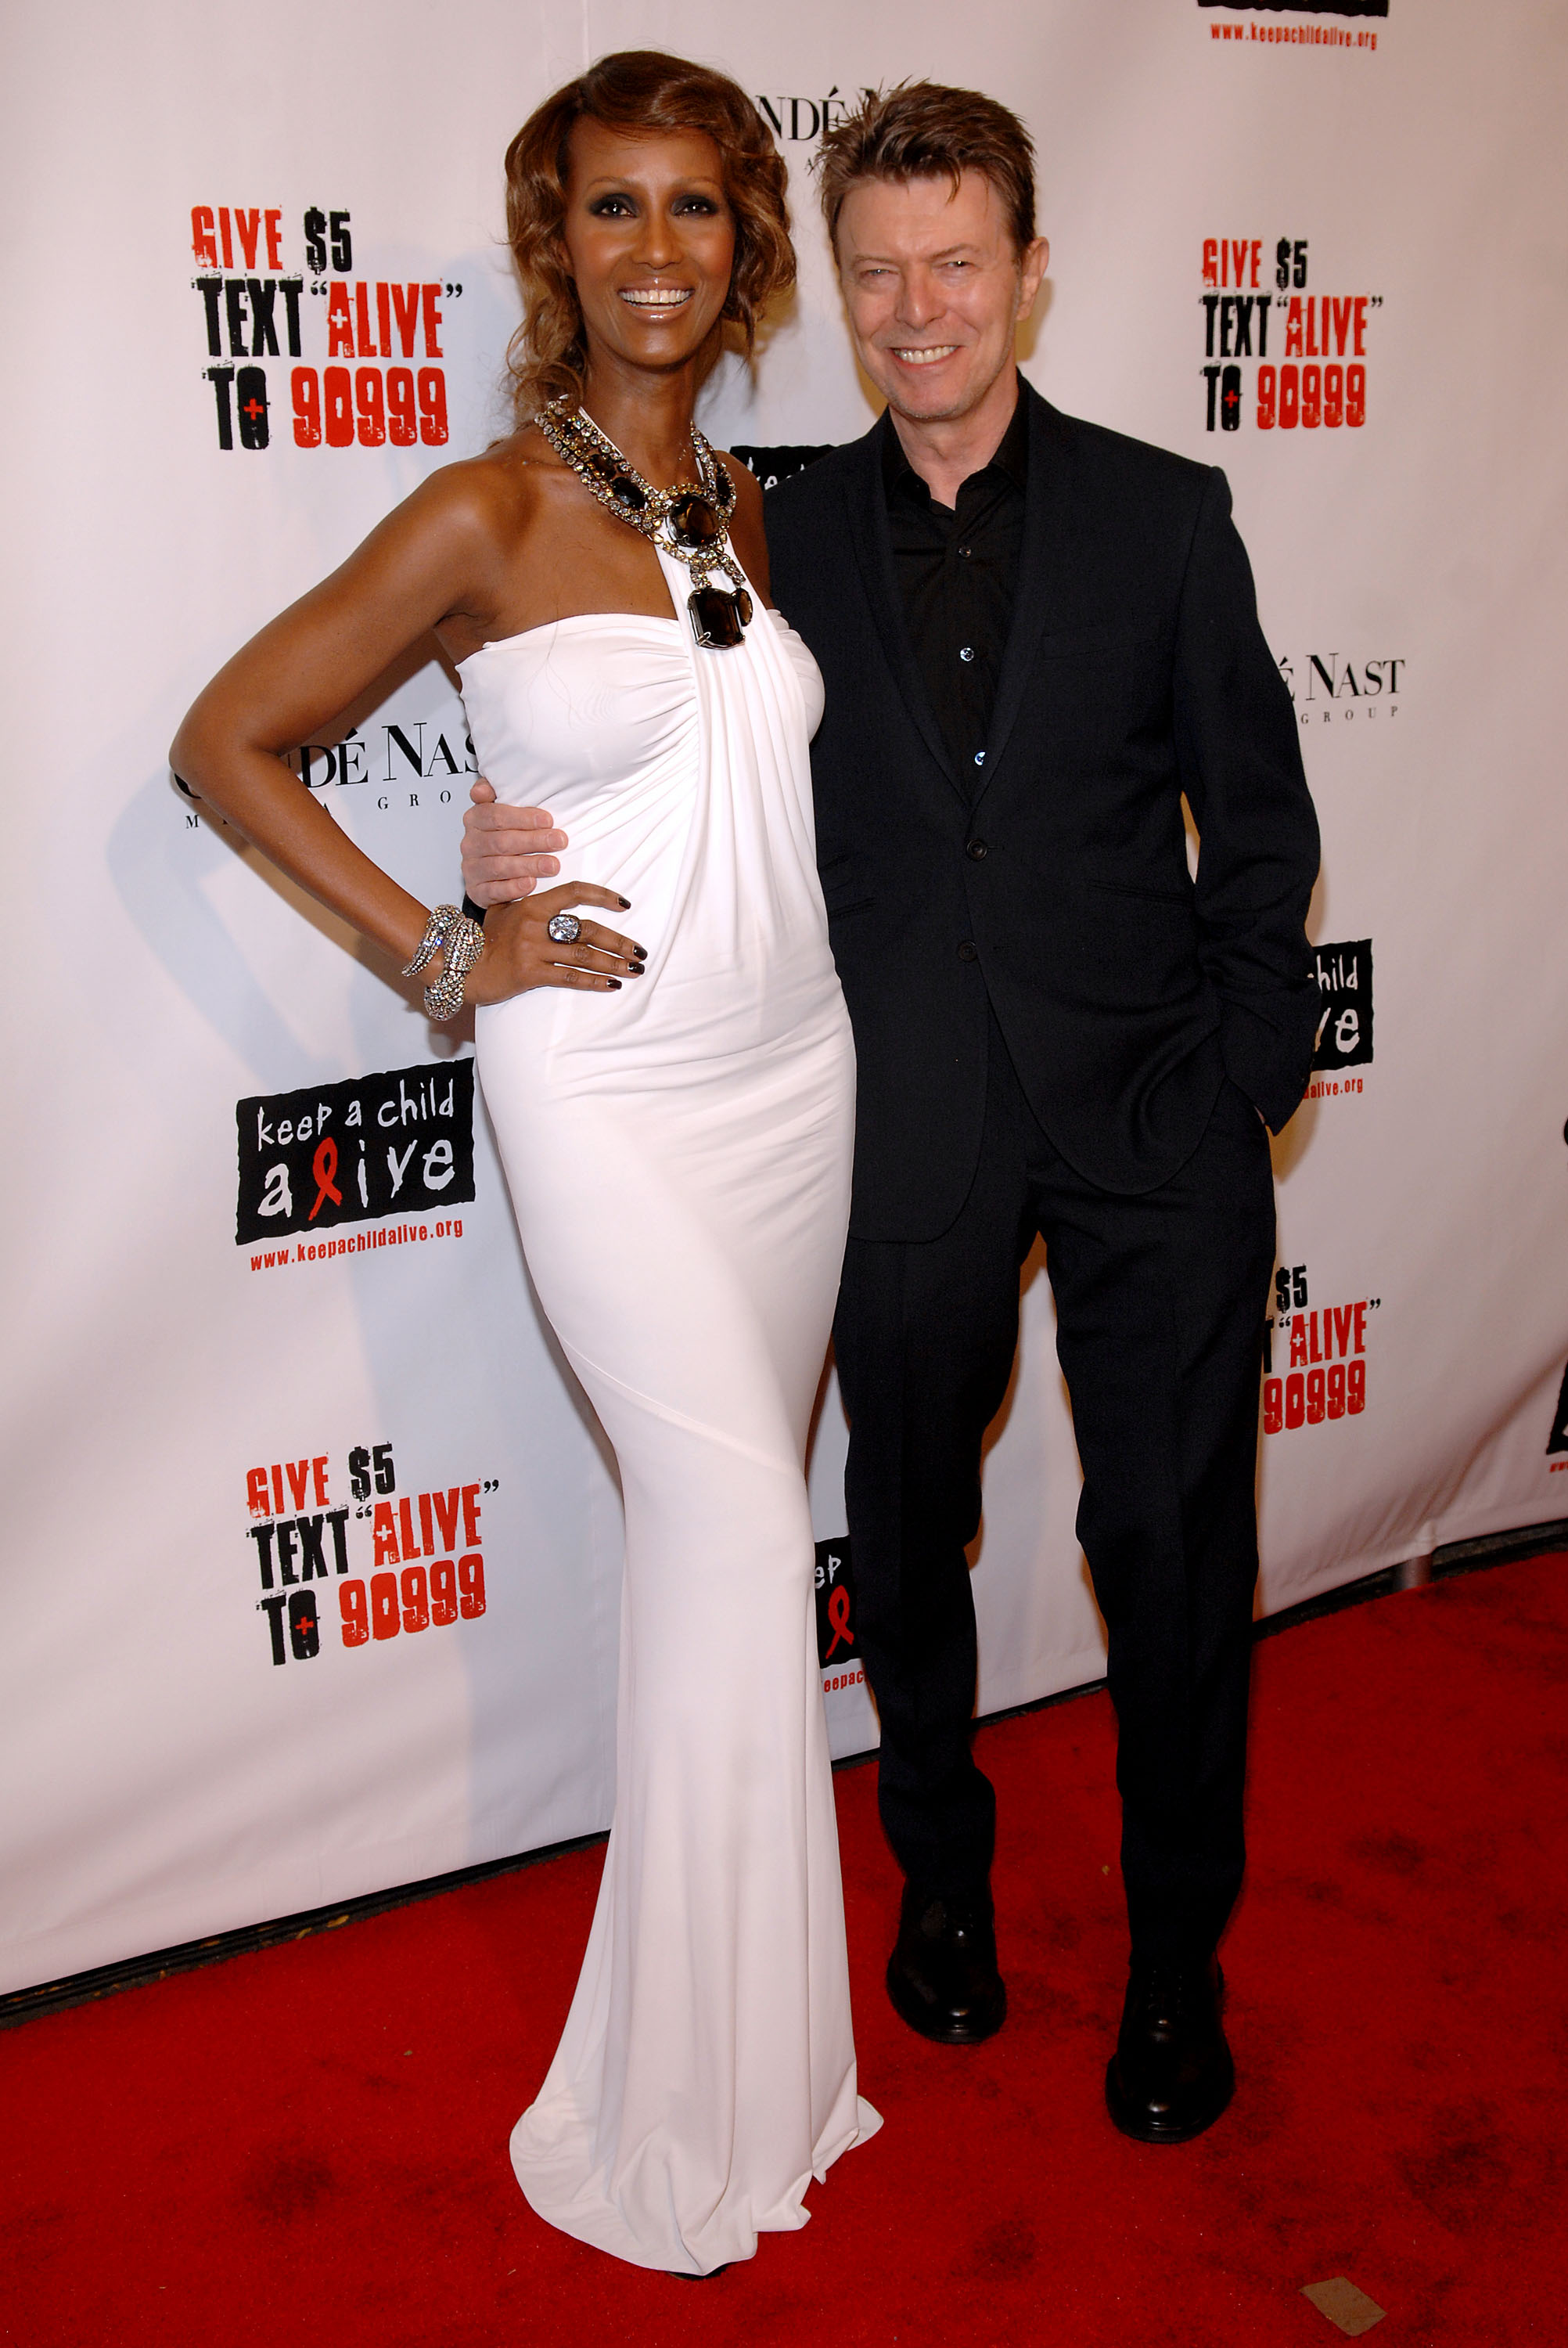 Iman and David Bowie attends the Keep a Child Alive organization's 5th annual Black Ball at The Hammerstein Ballroom on November 13, 2008 in New York City.